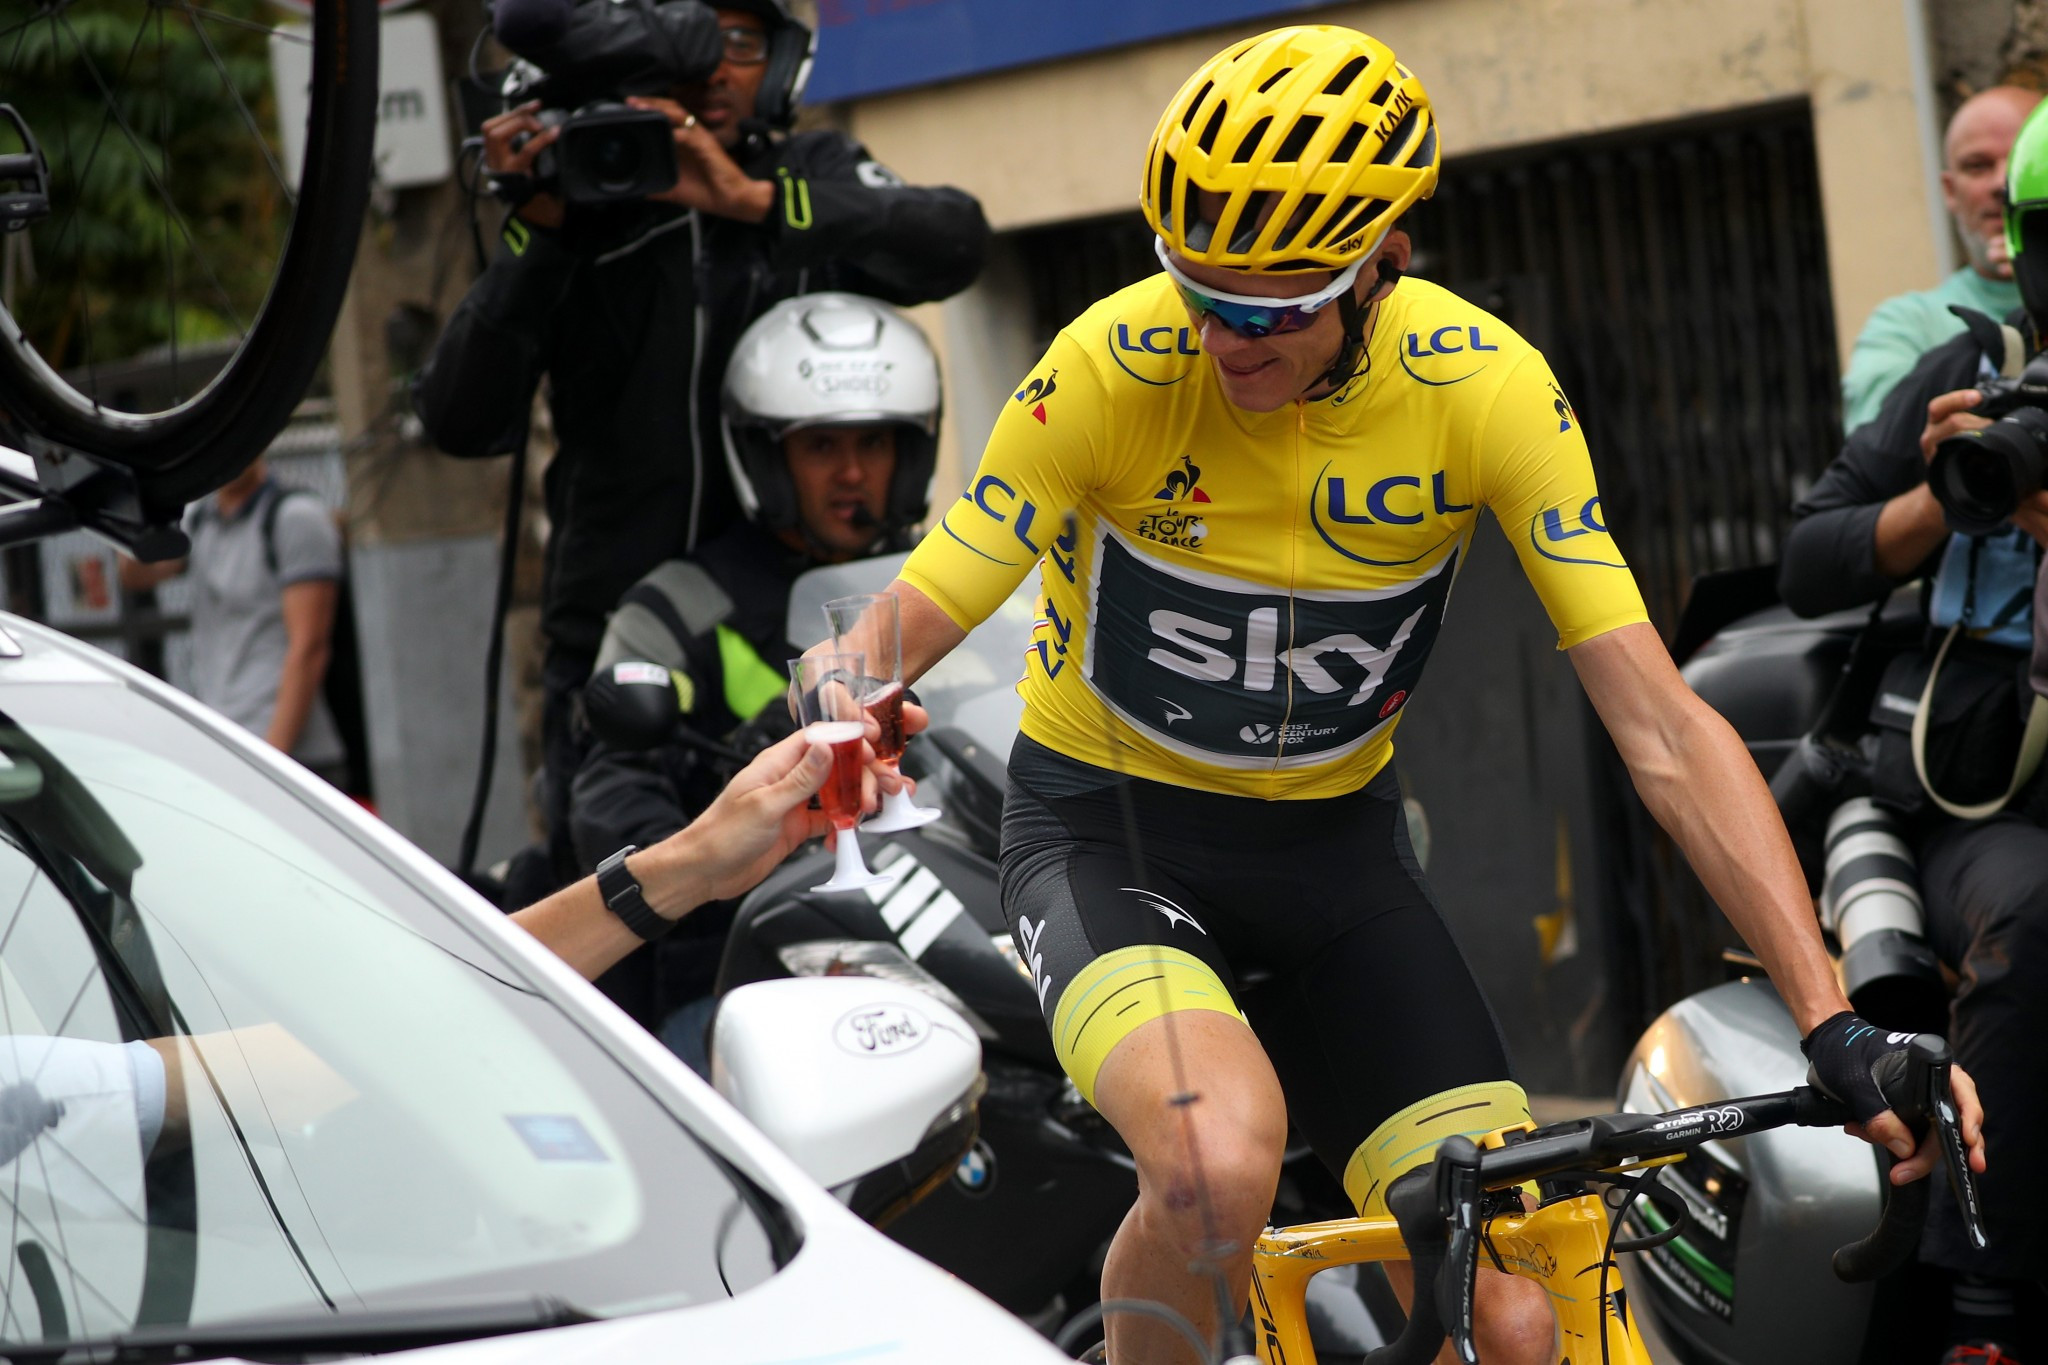 Froome eyes rare Tour de France and Vuelta a Espana double